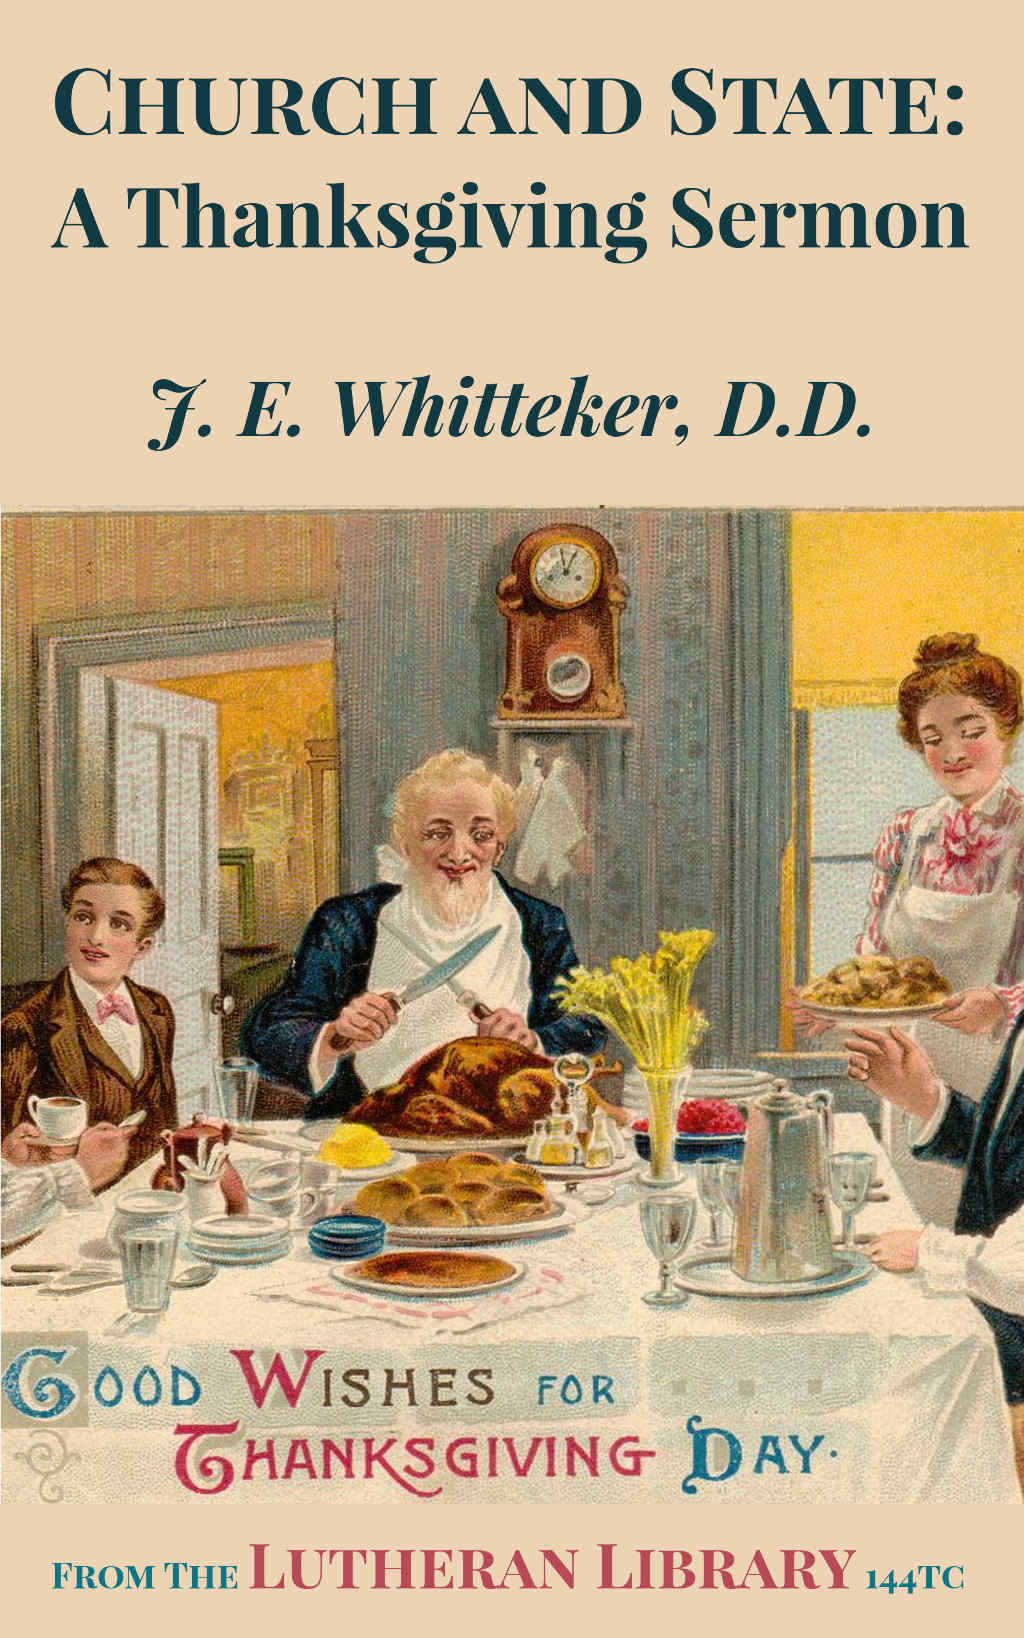 Church and State - A Thanksgiving Sermon by John Edwin Whitteker